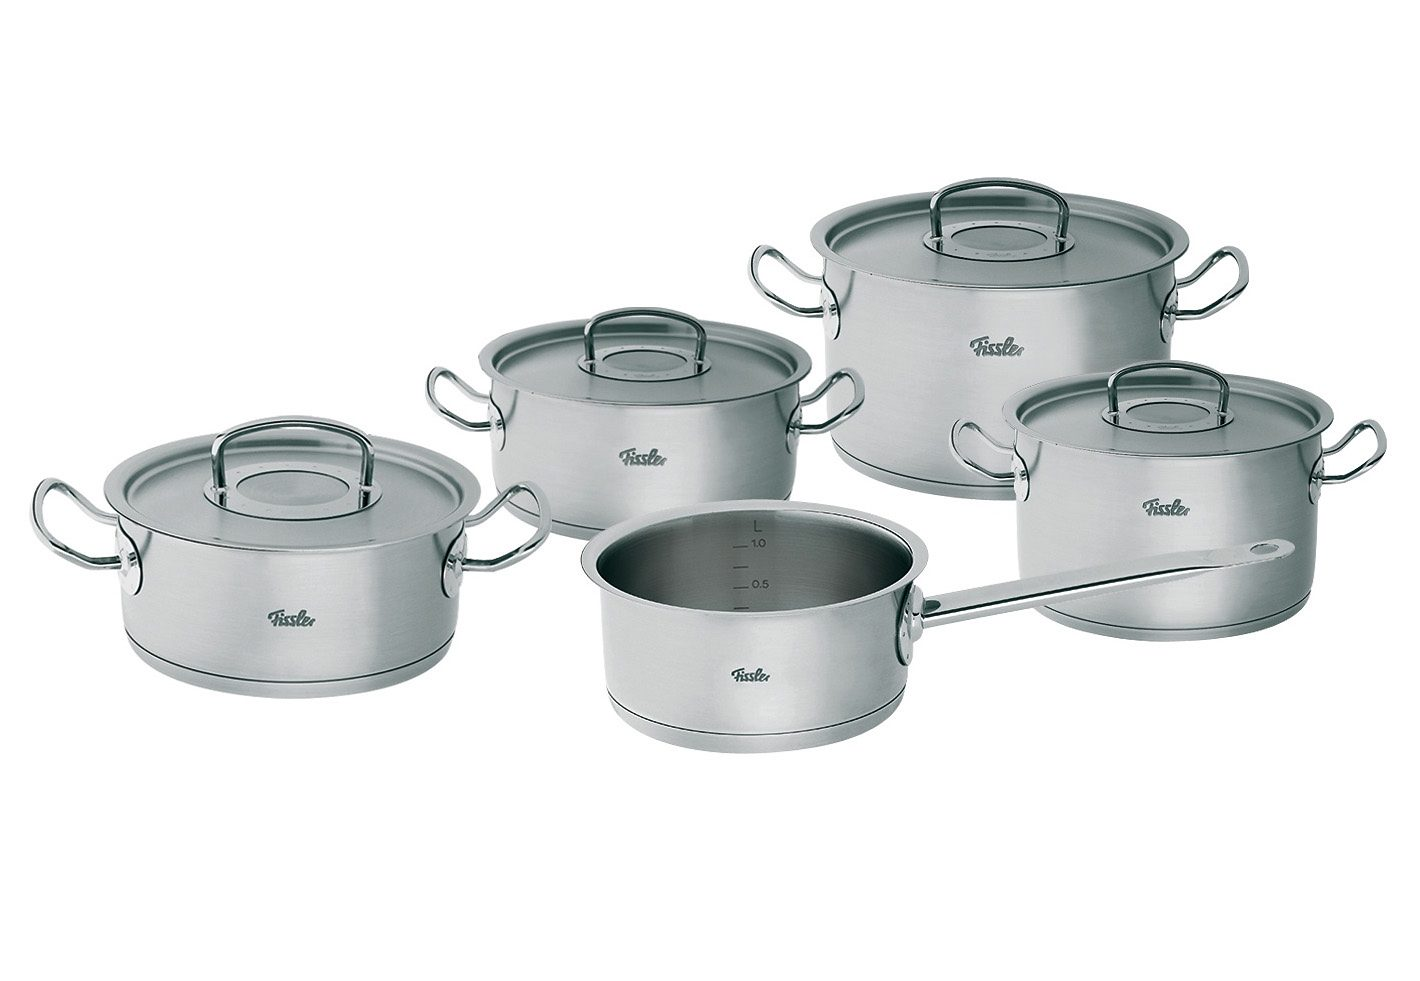 Topf-Set, Edelstahl 18/10 , »orginal-profi collection«, Fissler (9tlg.)